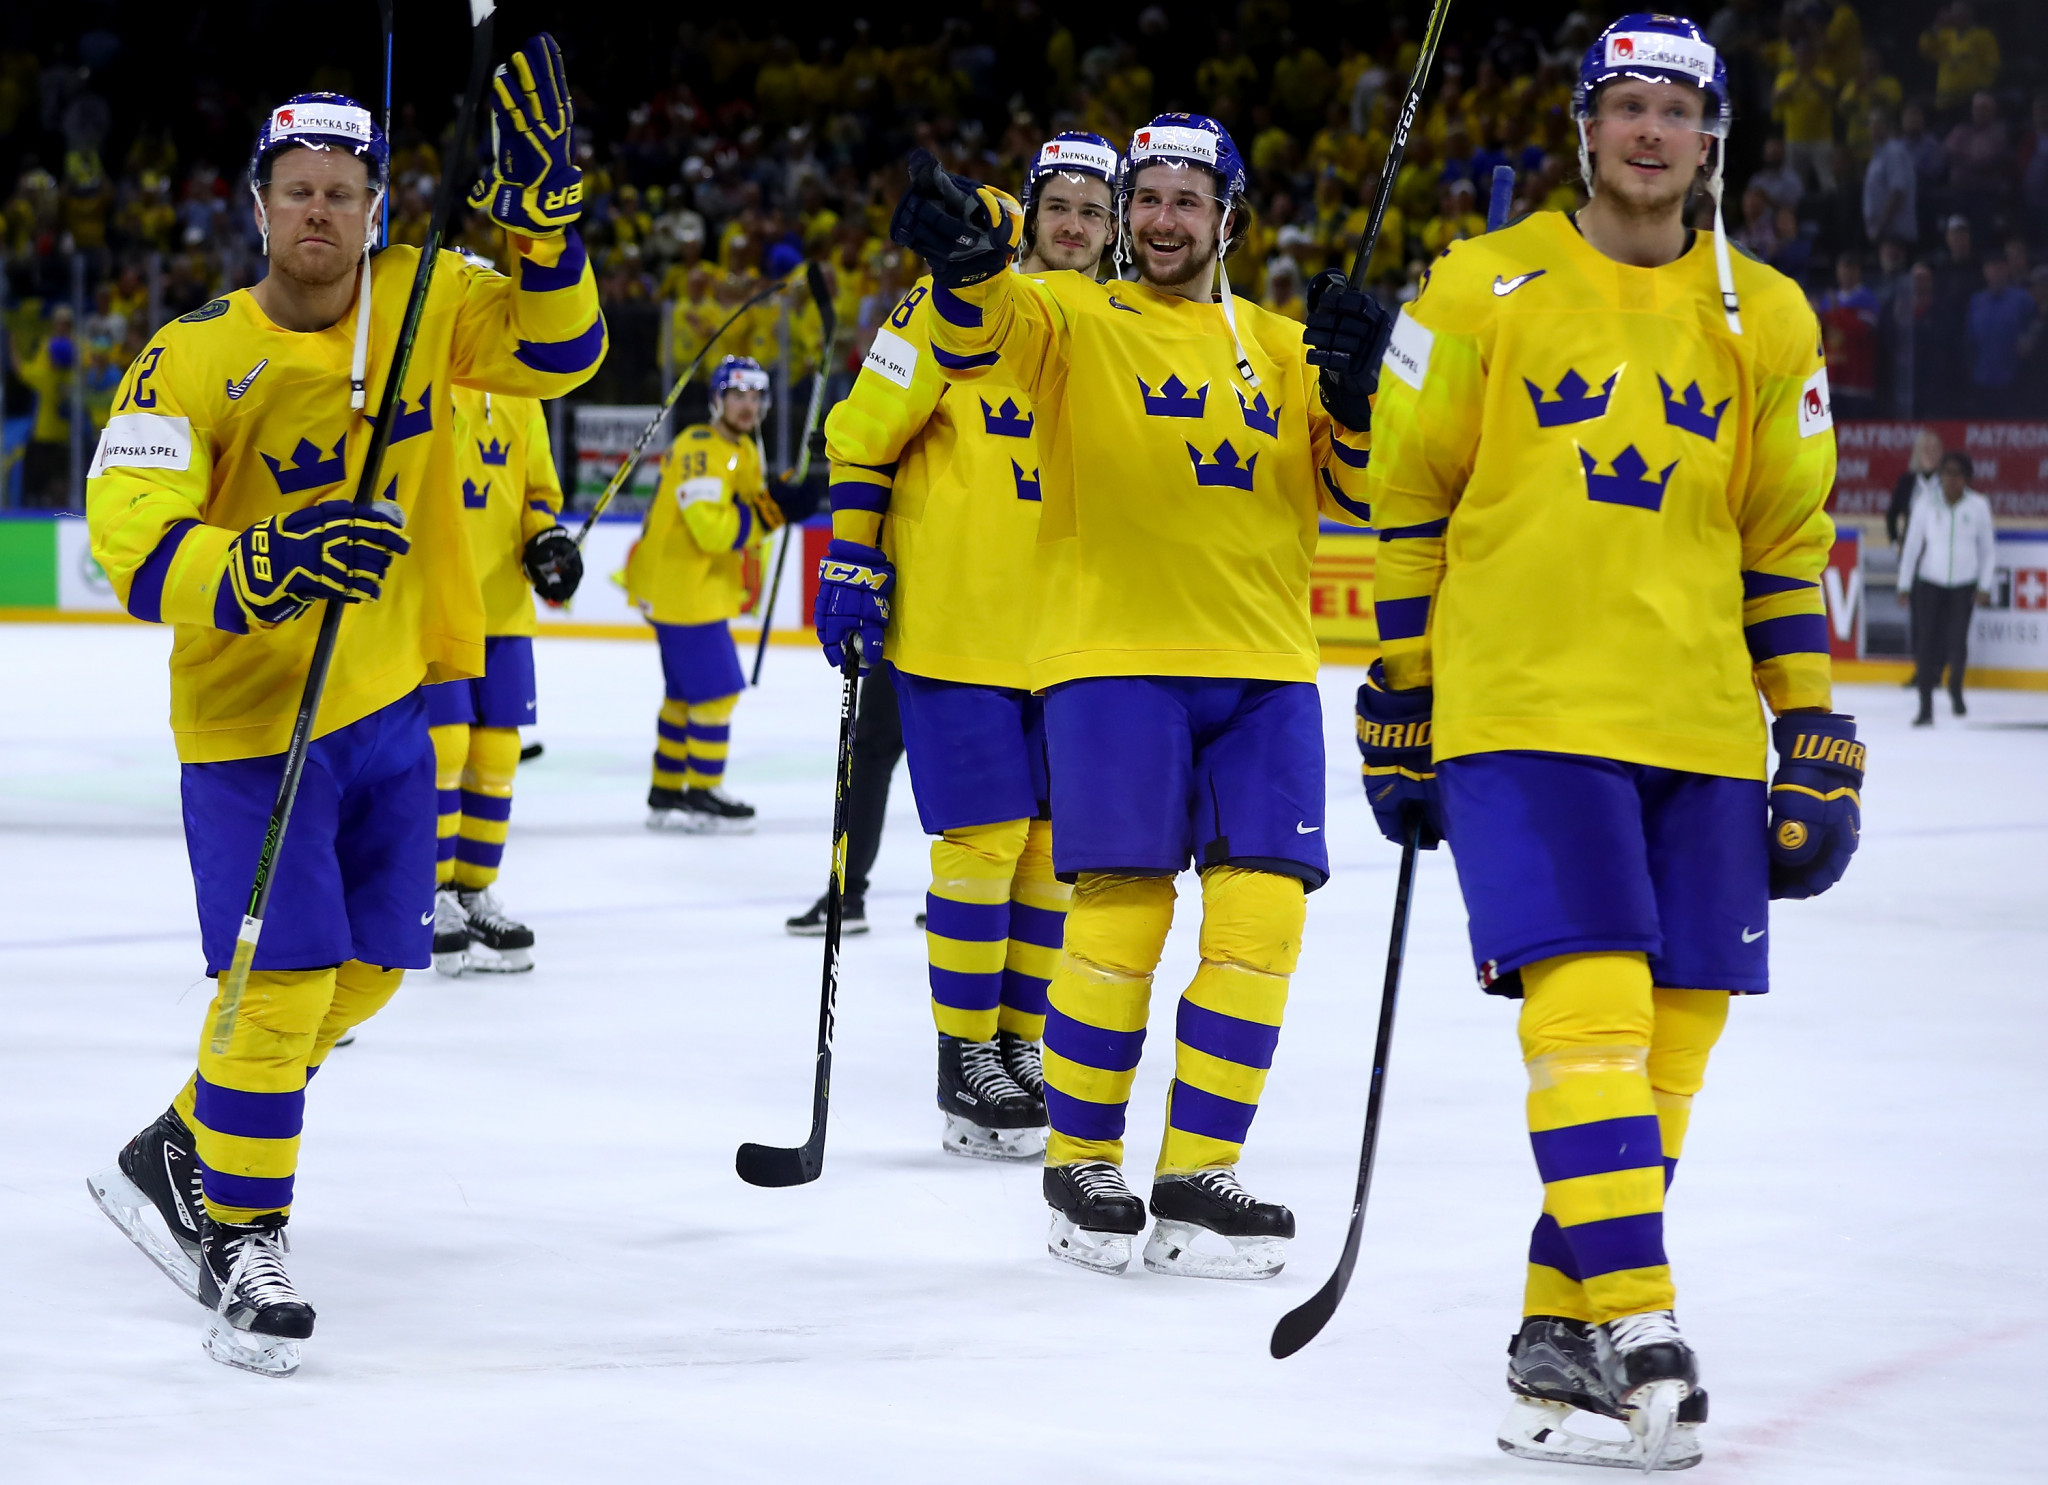 Defending champions Sweden ease past United States to reach IIHF World Championship final